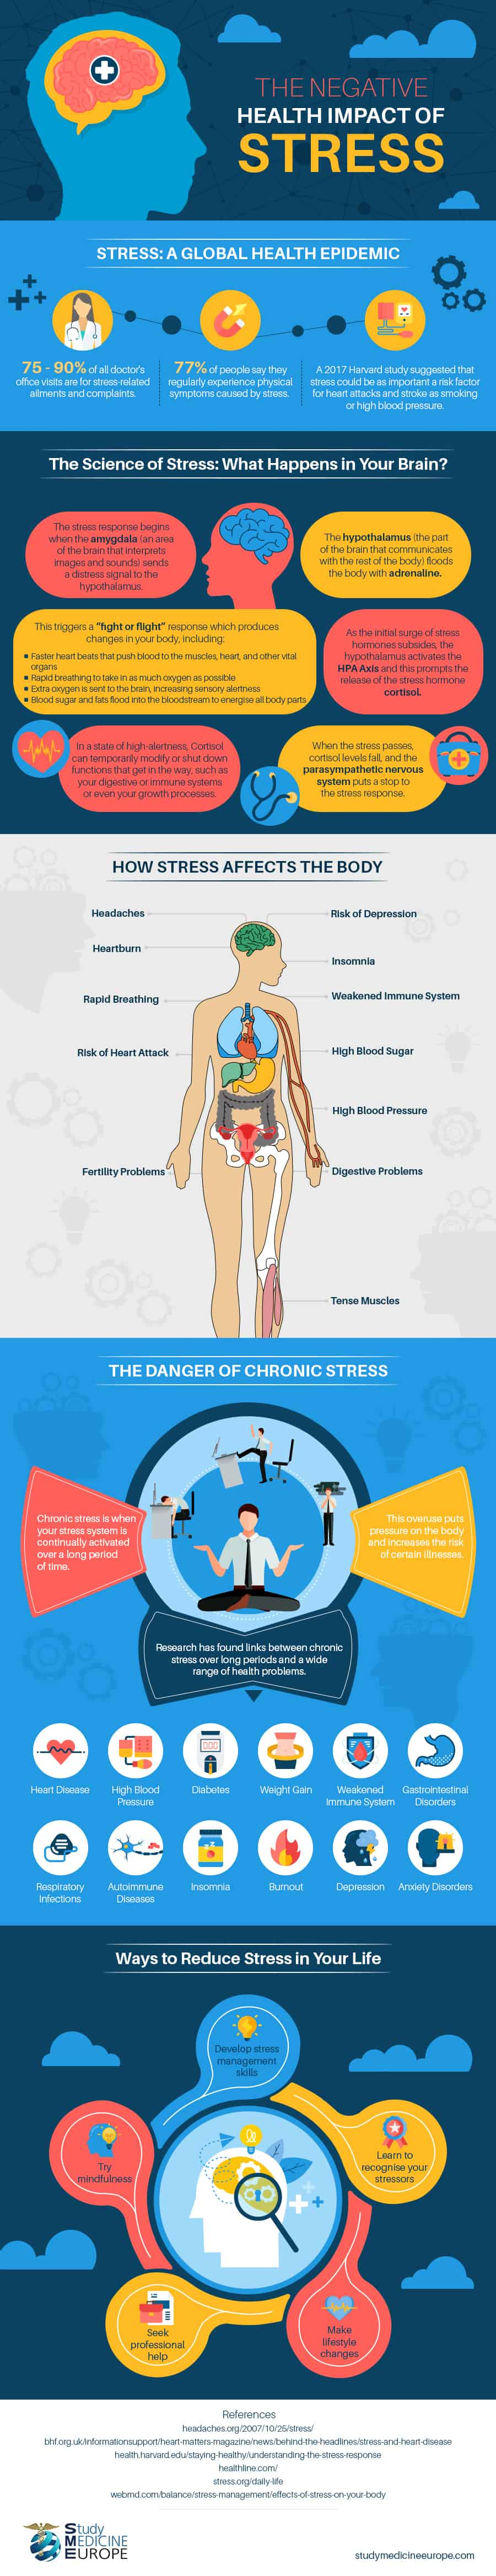 The Negative Health Impact of Stress